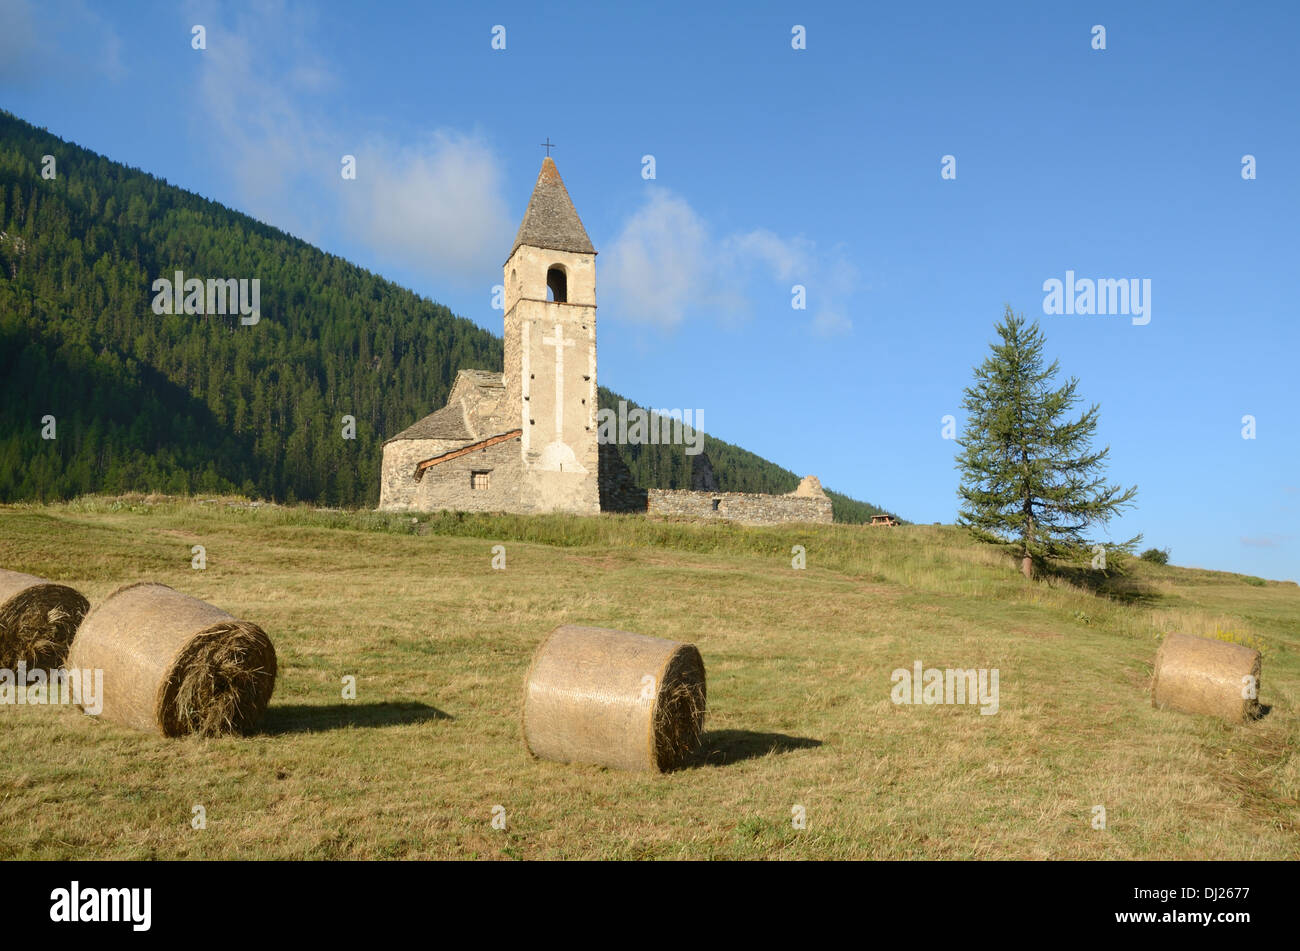 Chapel Church or Eglise St-Pierre d'Extravache Bramans Haute Maurienne Savoie France - Stock Image